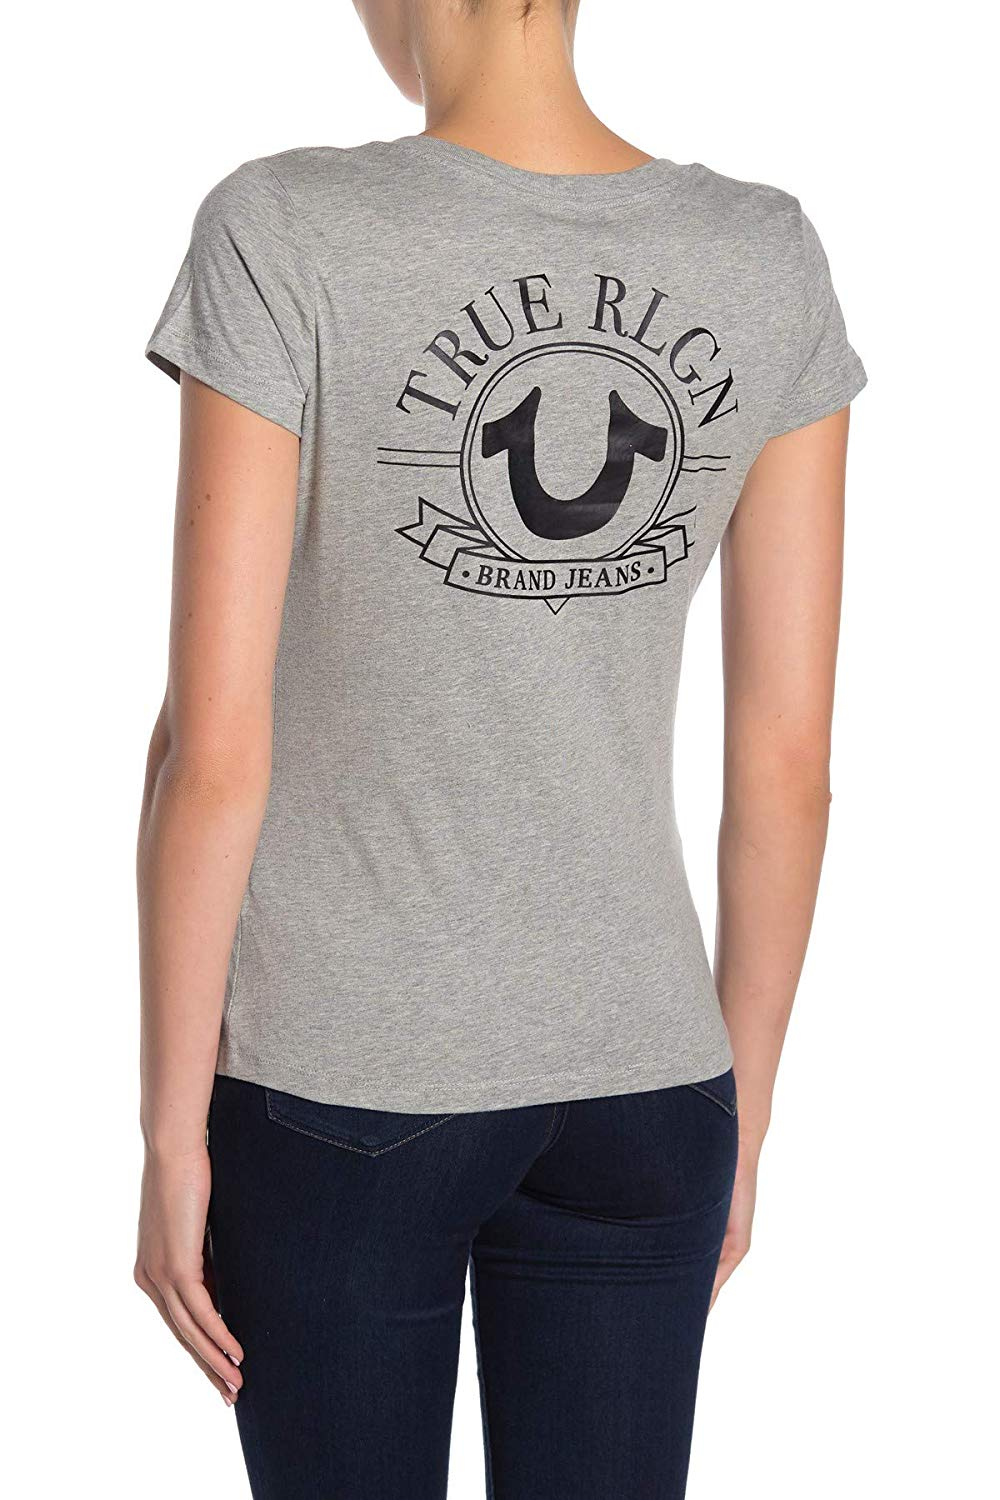 True-Religion-Women-039-s-Big-Horseshoe-V-Neck-Tee-T-Shirt thumbnail 9